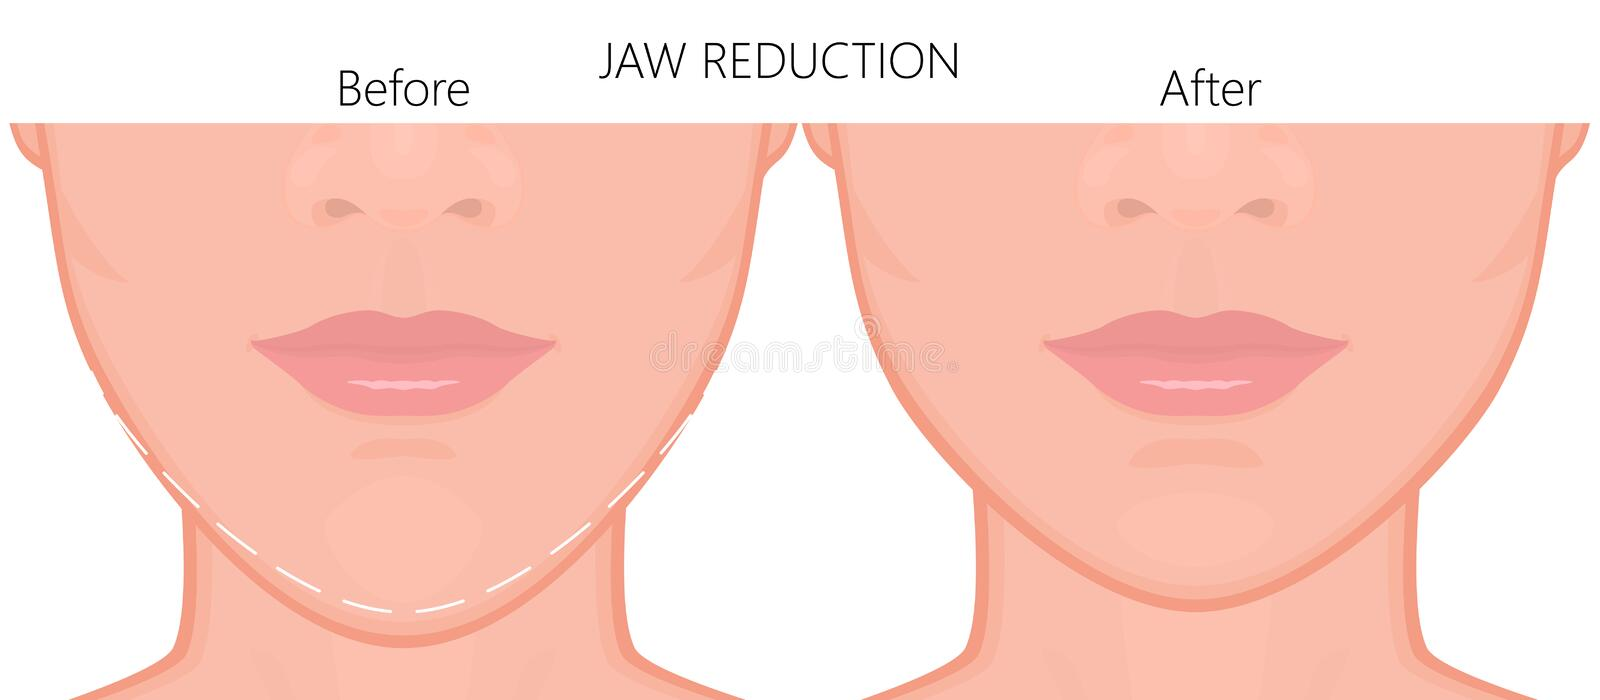 Fin de chirurgie de réduction de front_Jaw de visage vers le haut de 3 illustration de vecteur